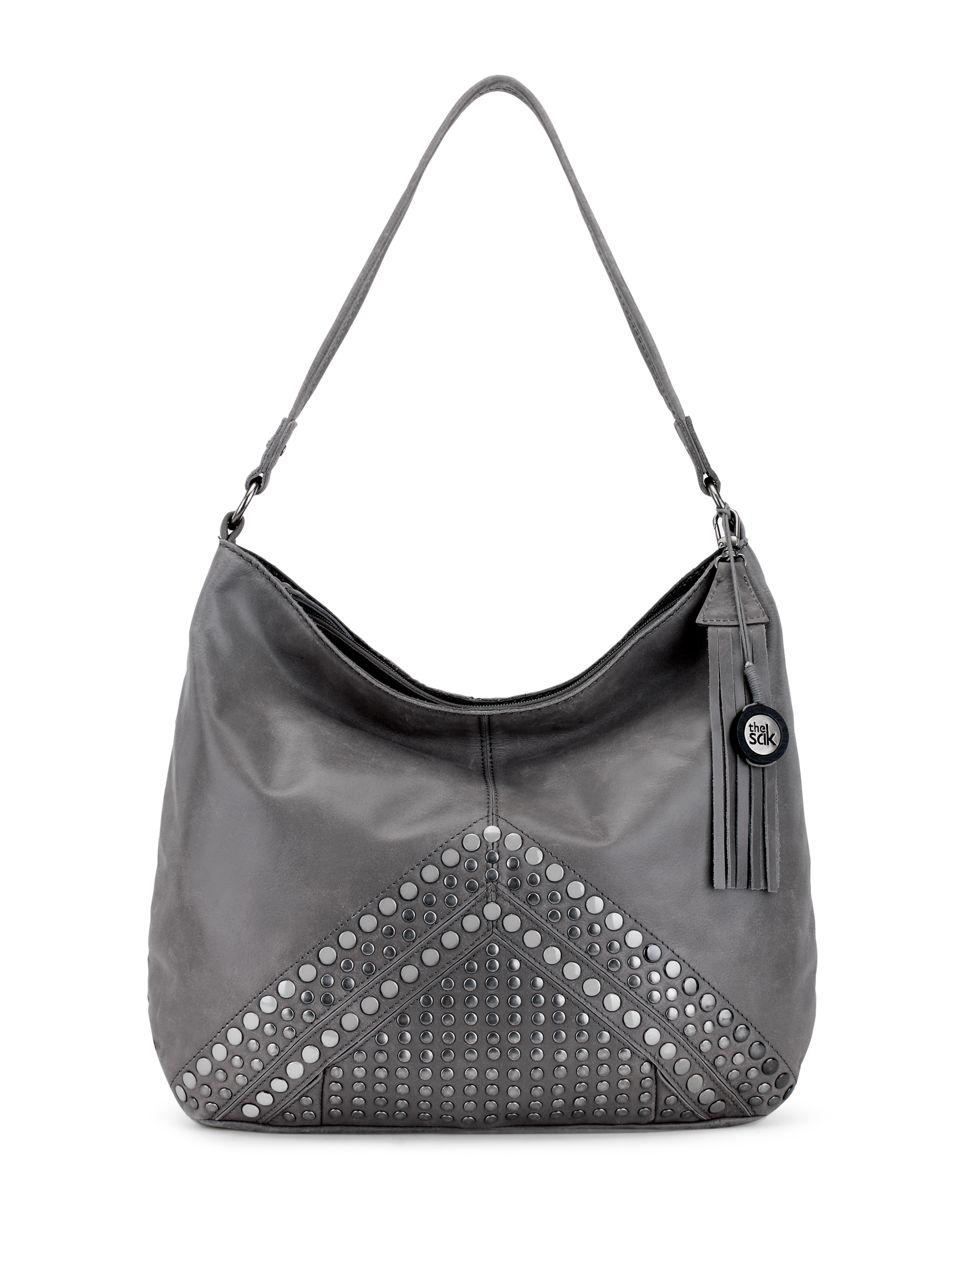 82a7083582e0 The Sak Indio Leather Hobo Bag in Gray - Lyst